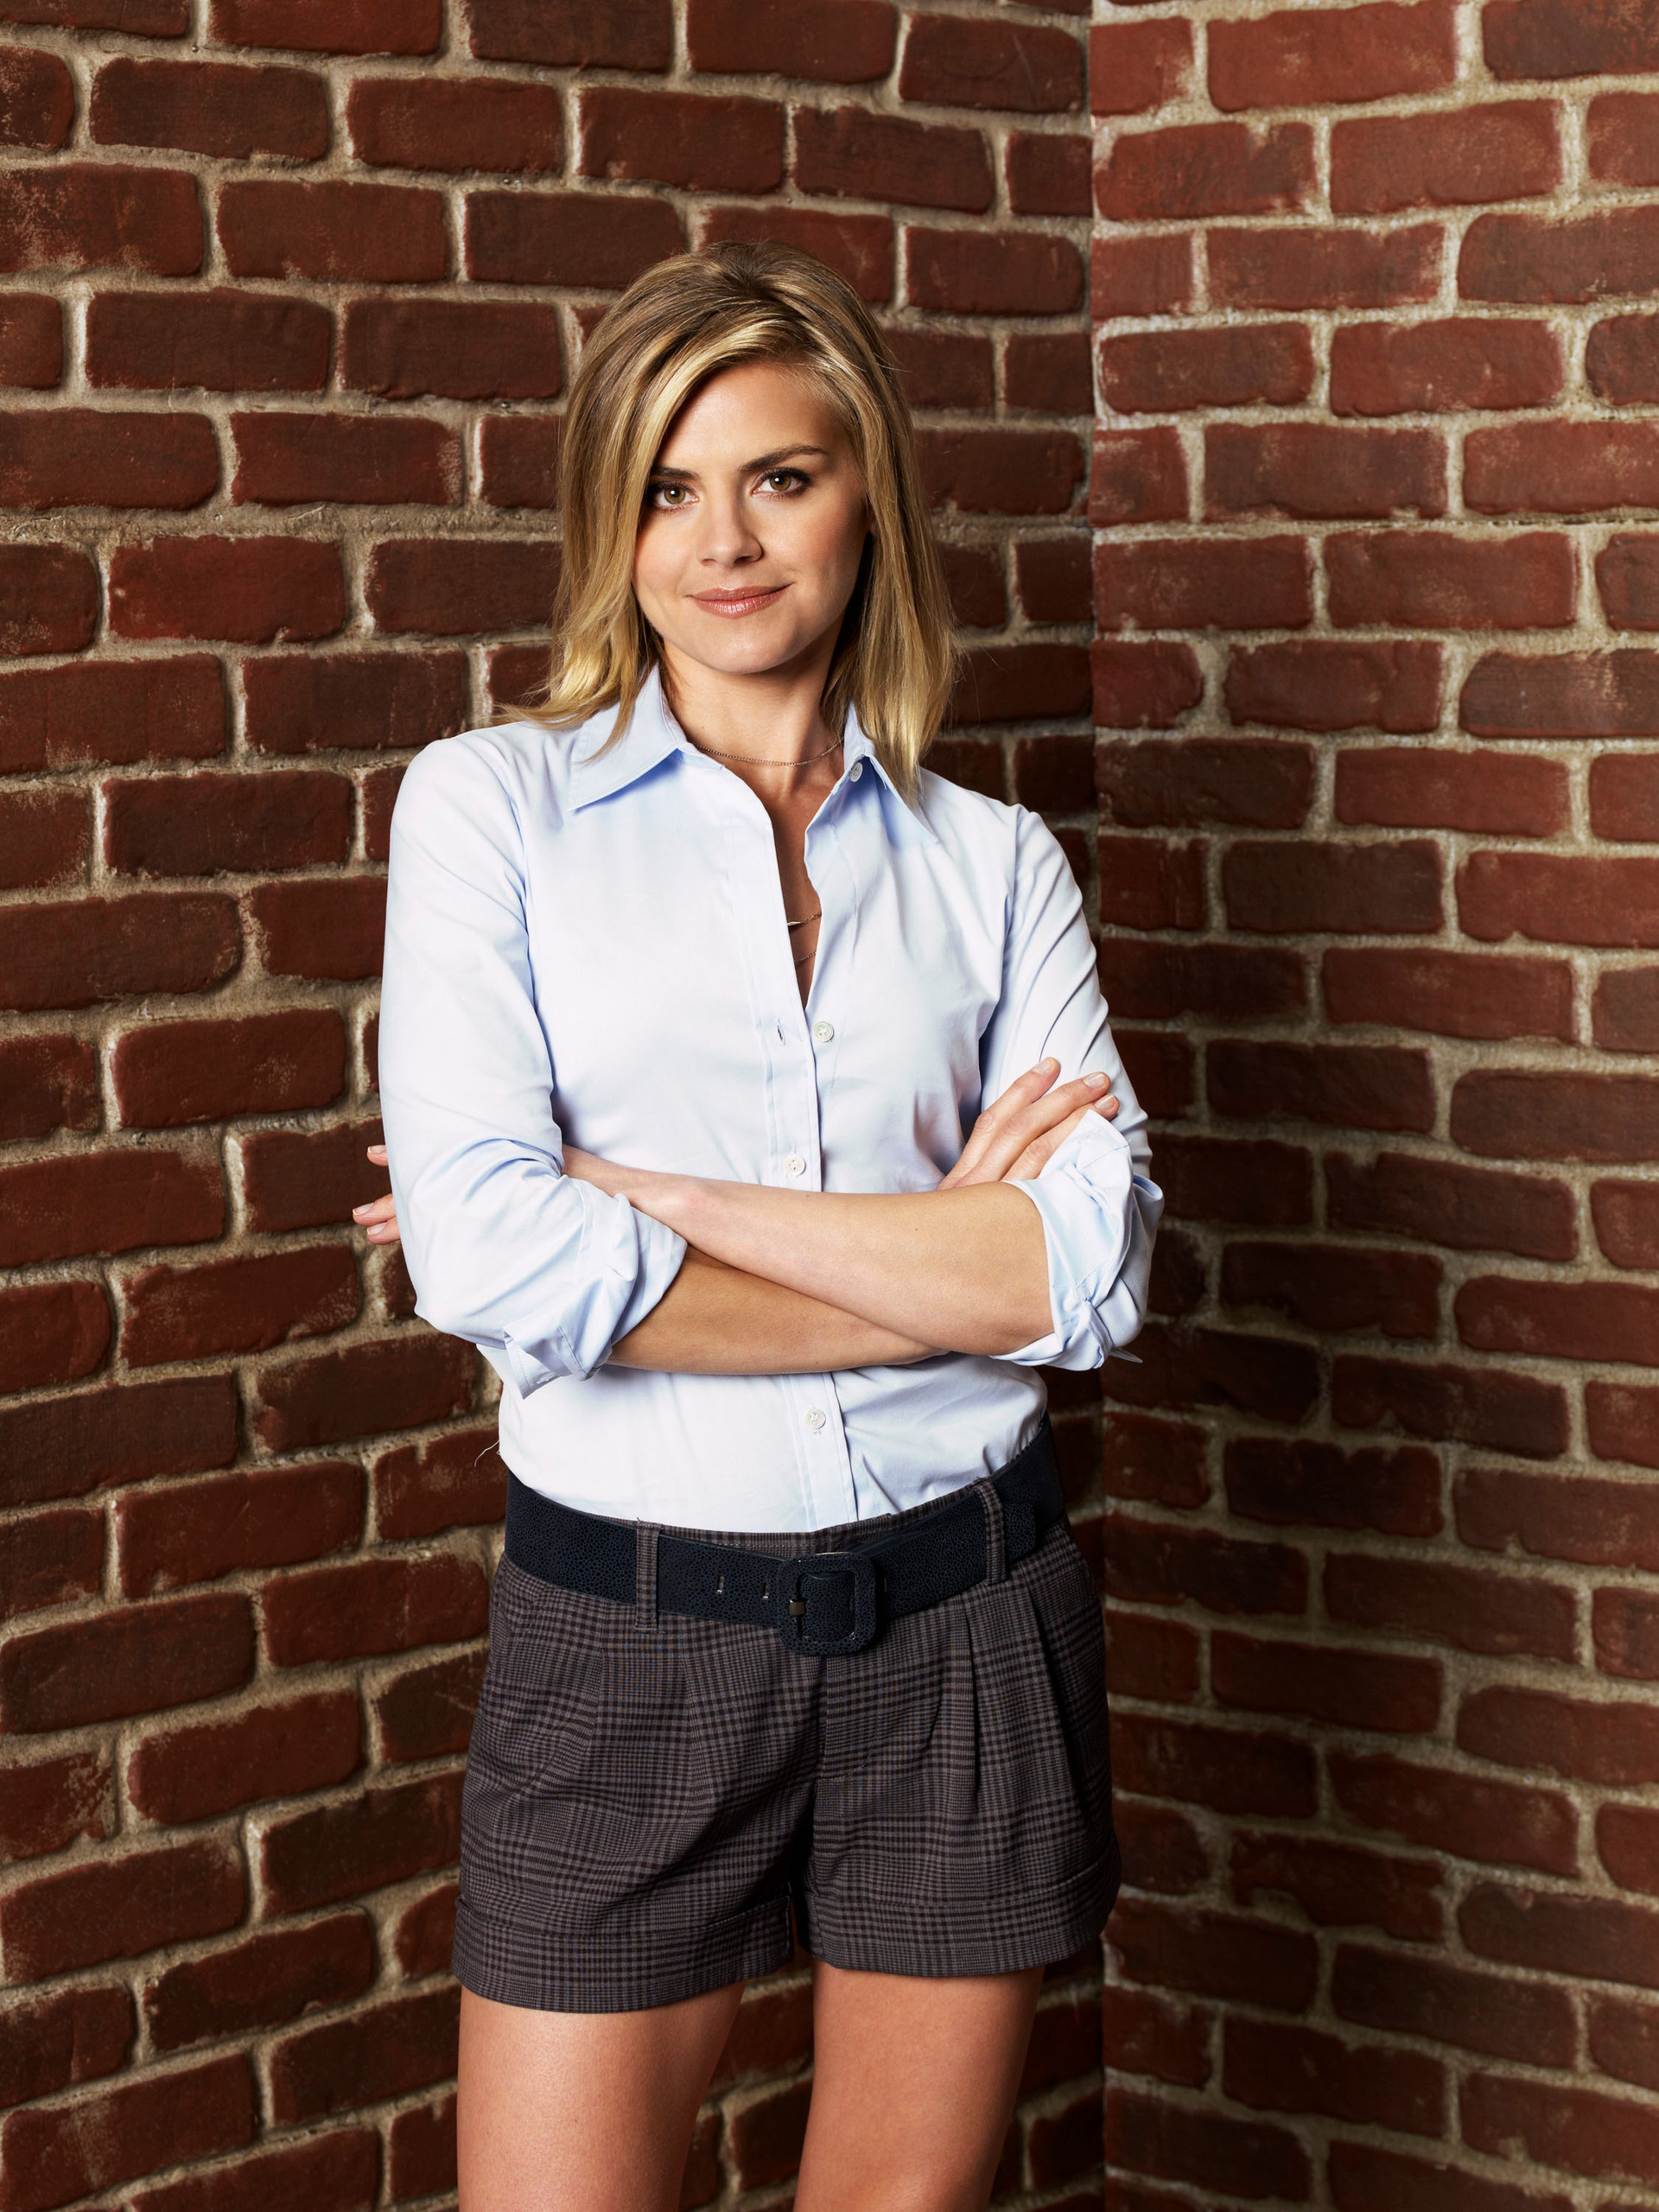 eliza coupe wiki